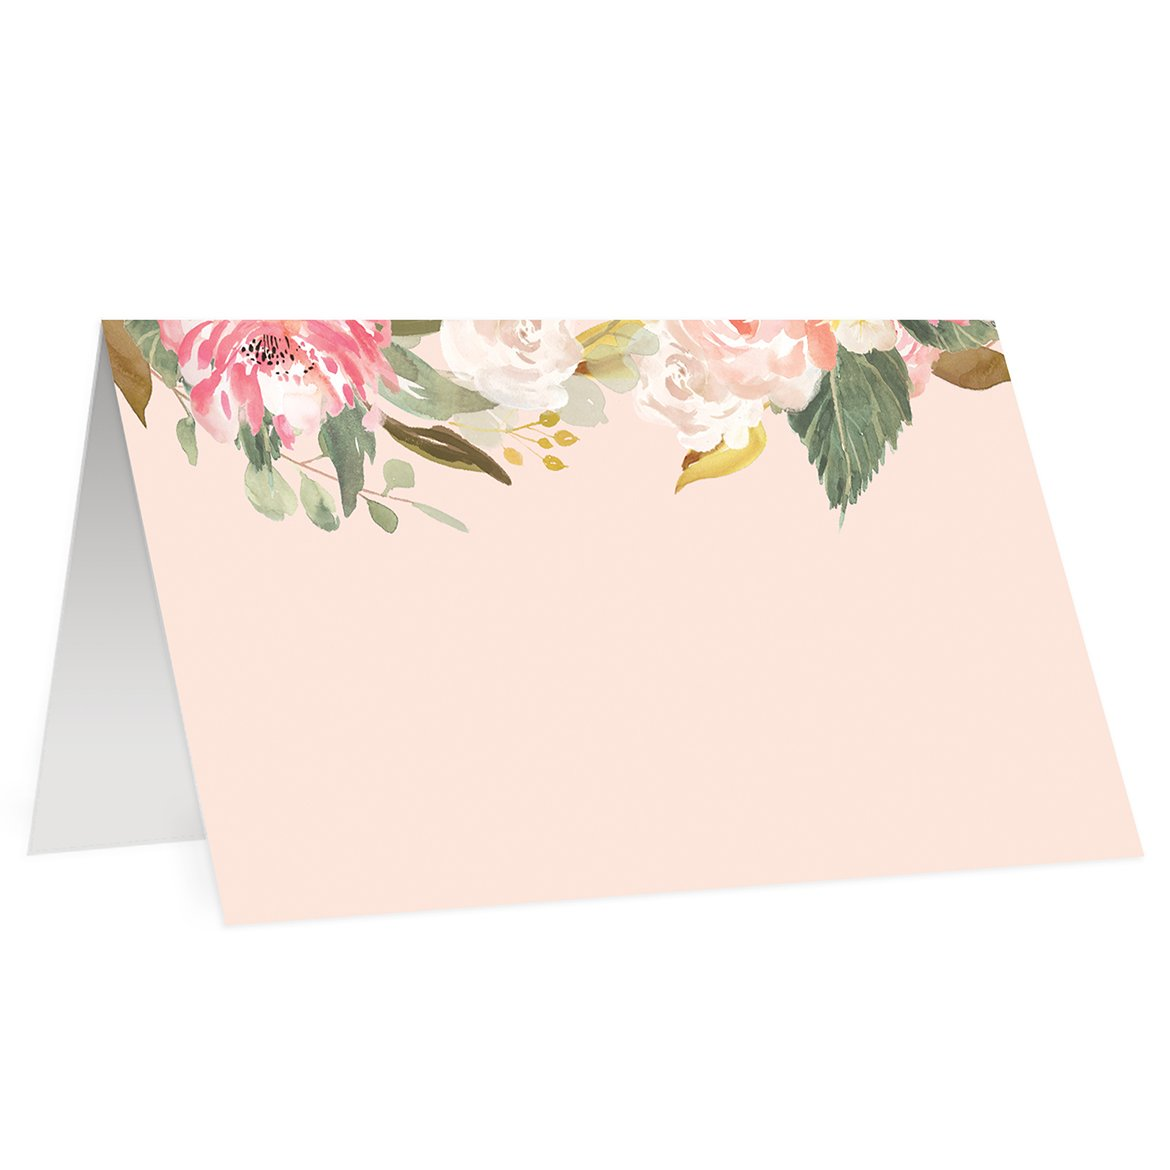 Blush Pink Place Cards (50 Pack) Big Set Watercolor Floral Wedding Escort Cards Elegant Table Tent Folded Blank Fill In Assigned Seating 3.5 x 2